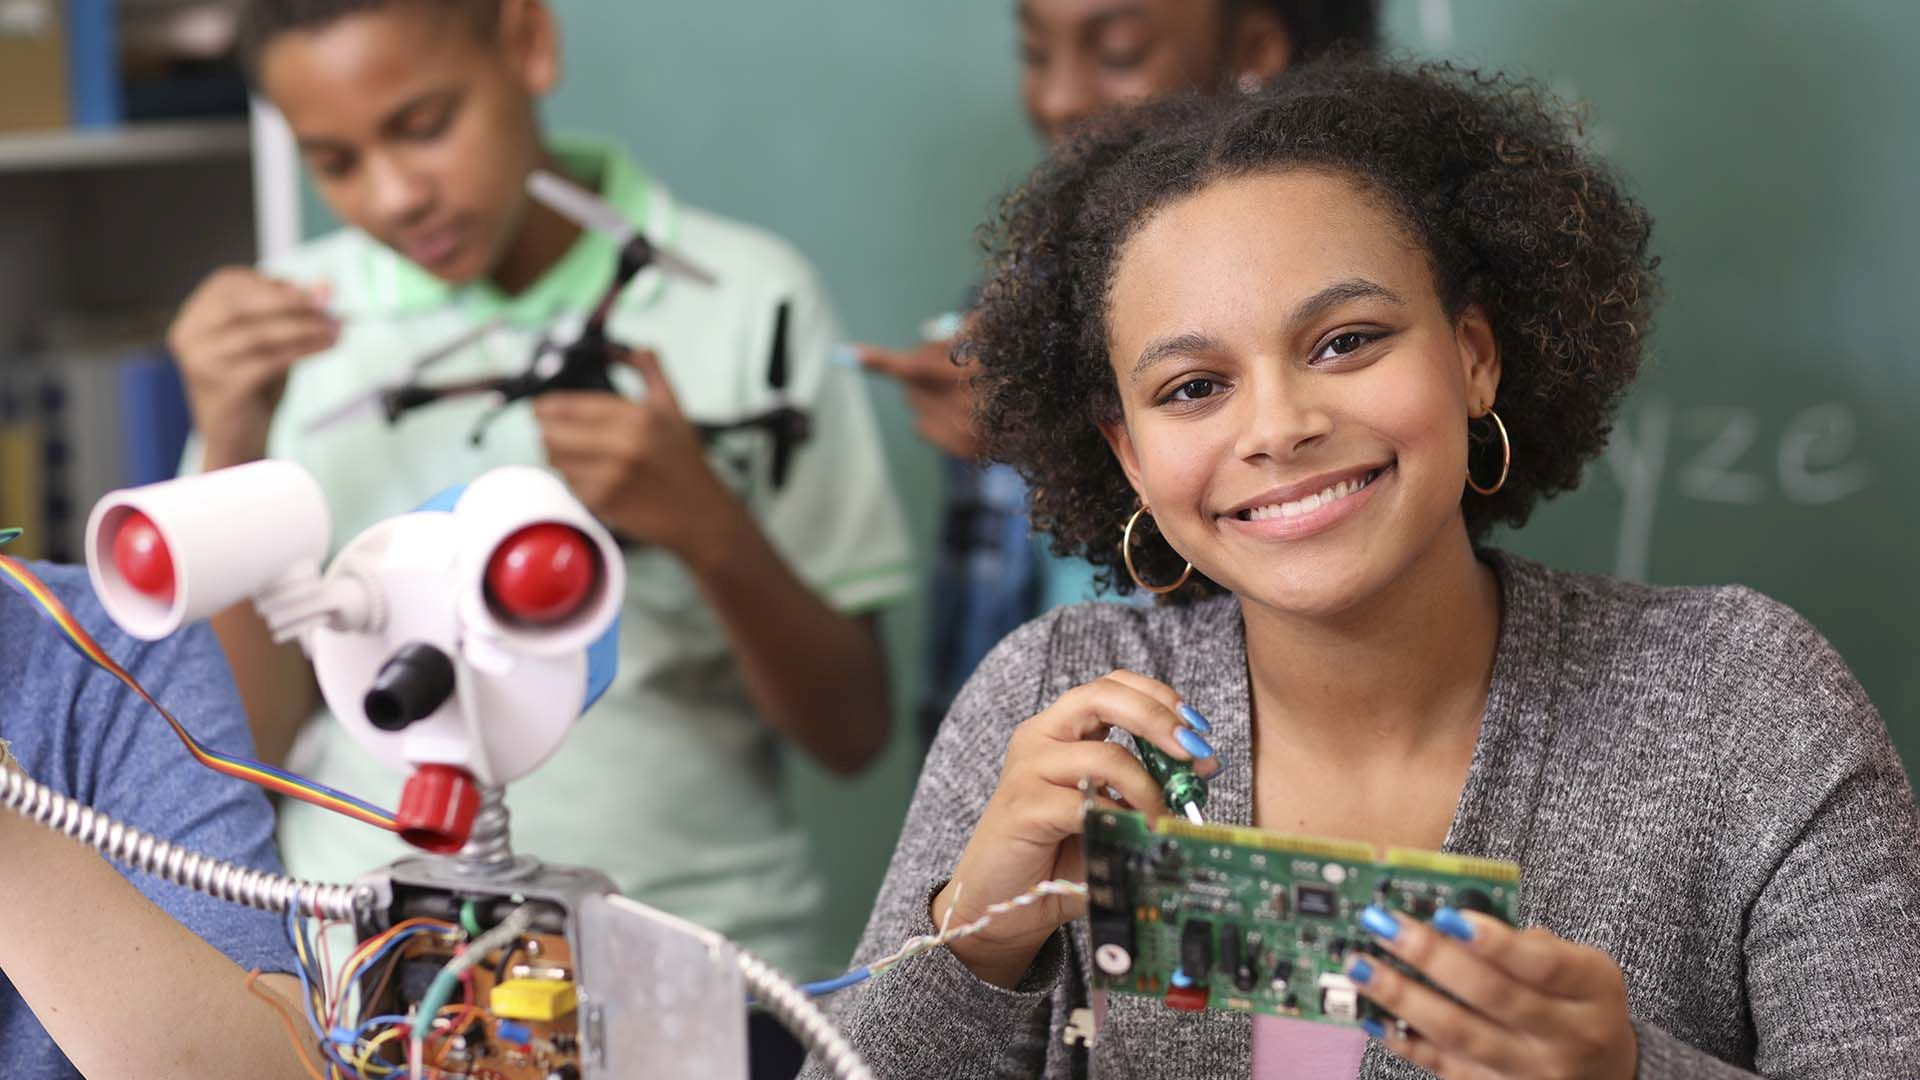 lady working on robotics with children in background